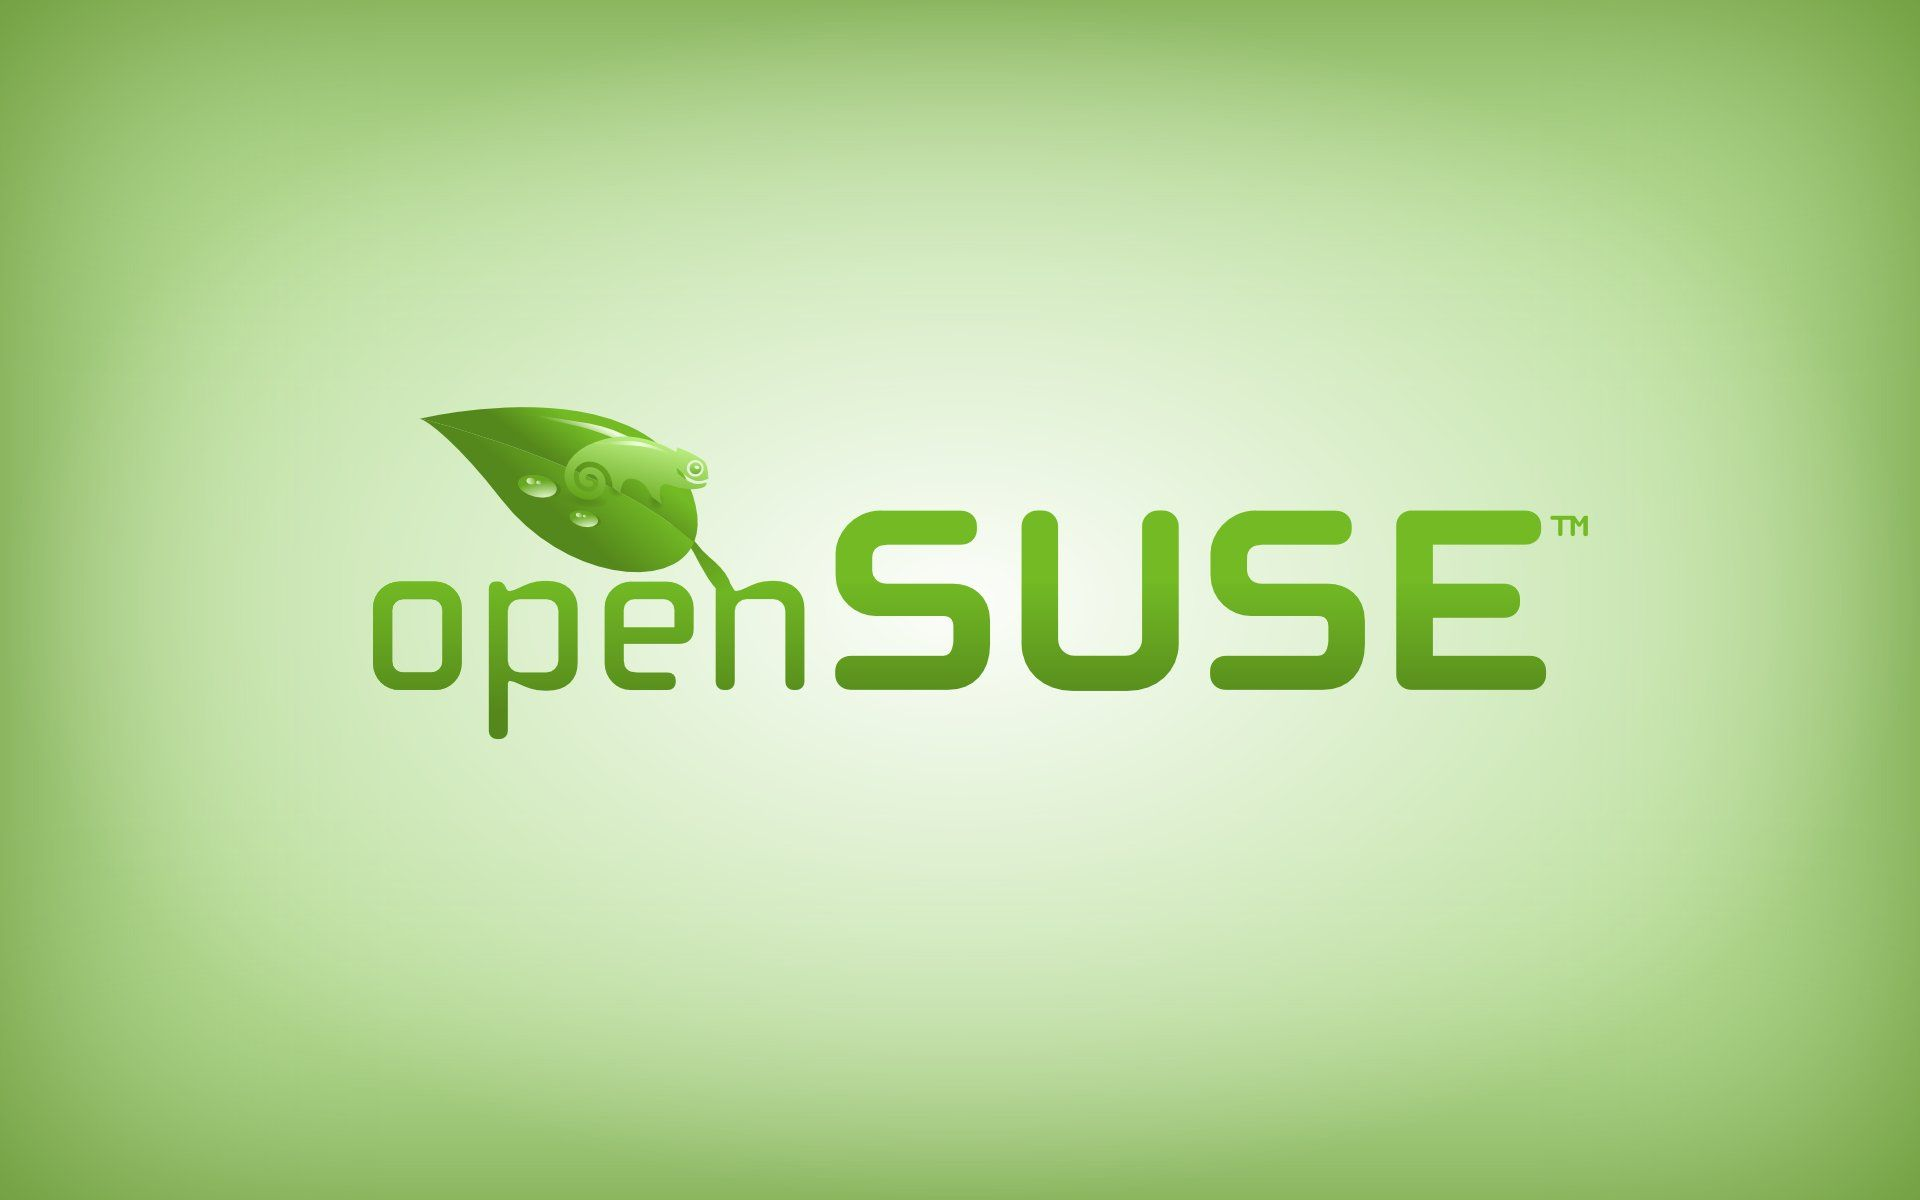 opensuse-wallpaper